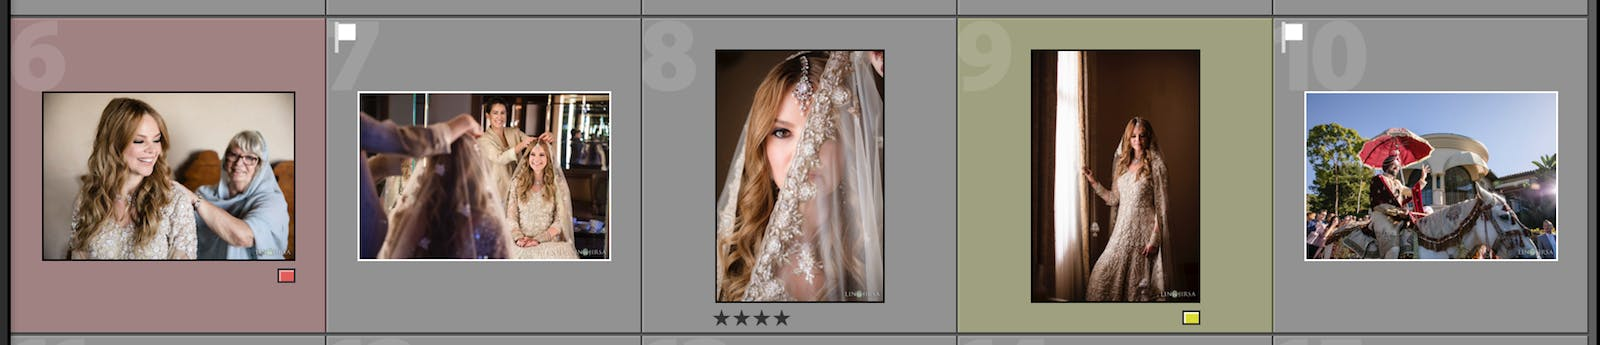 Use an efficient culling method when designing photo slideshows